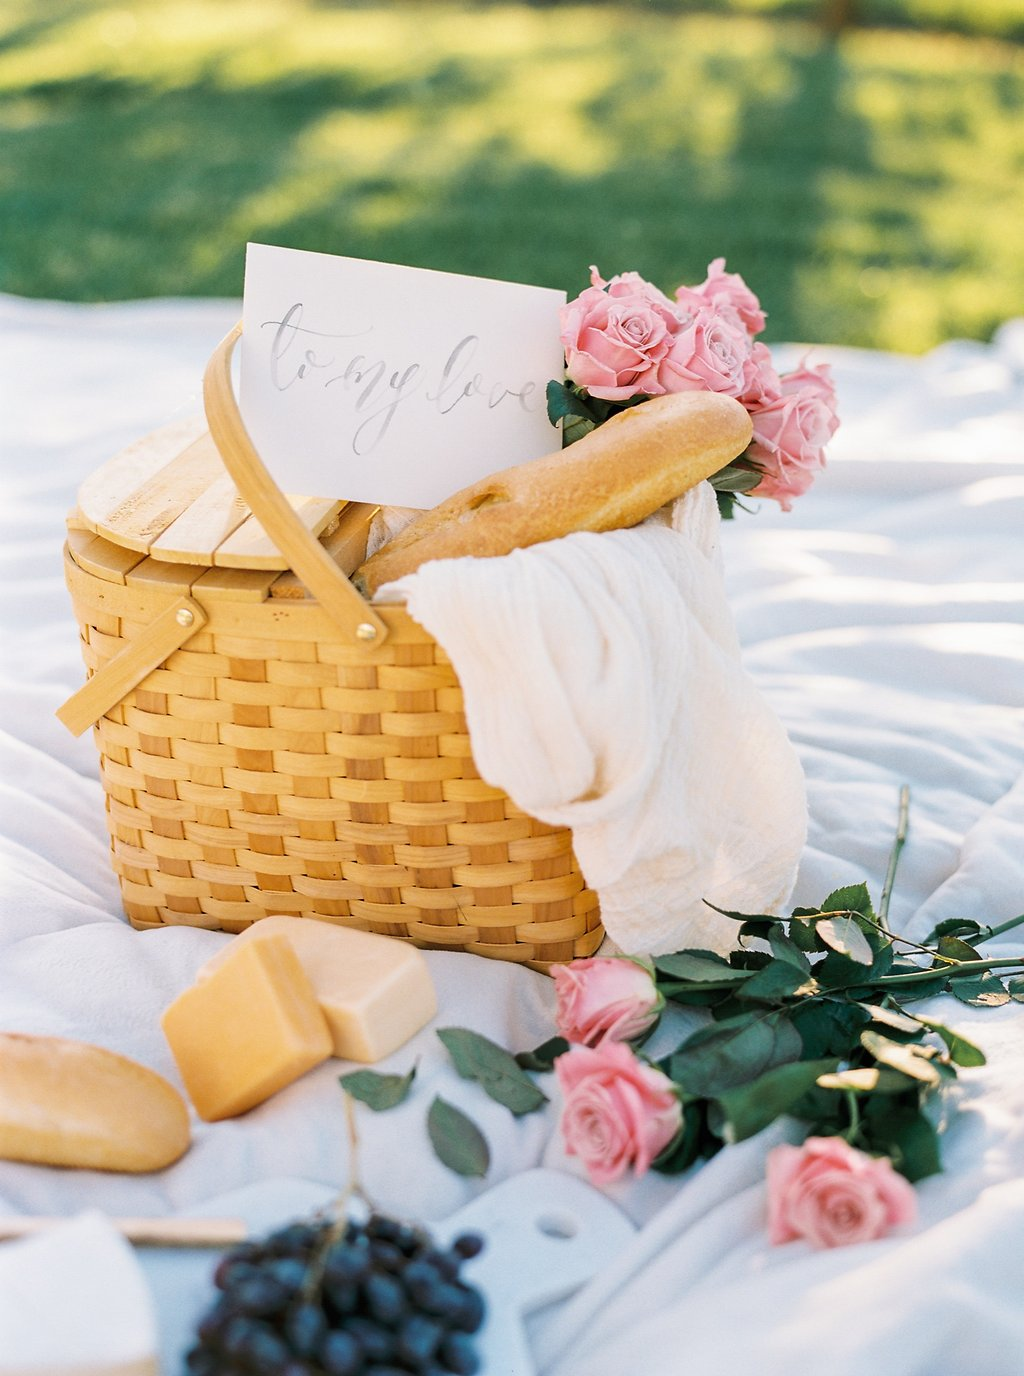 Love Letter and Picnic Engagement Shoot by Simply Jessica Marie Photographed by Perry Vaile